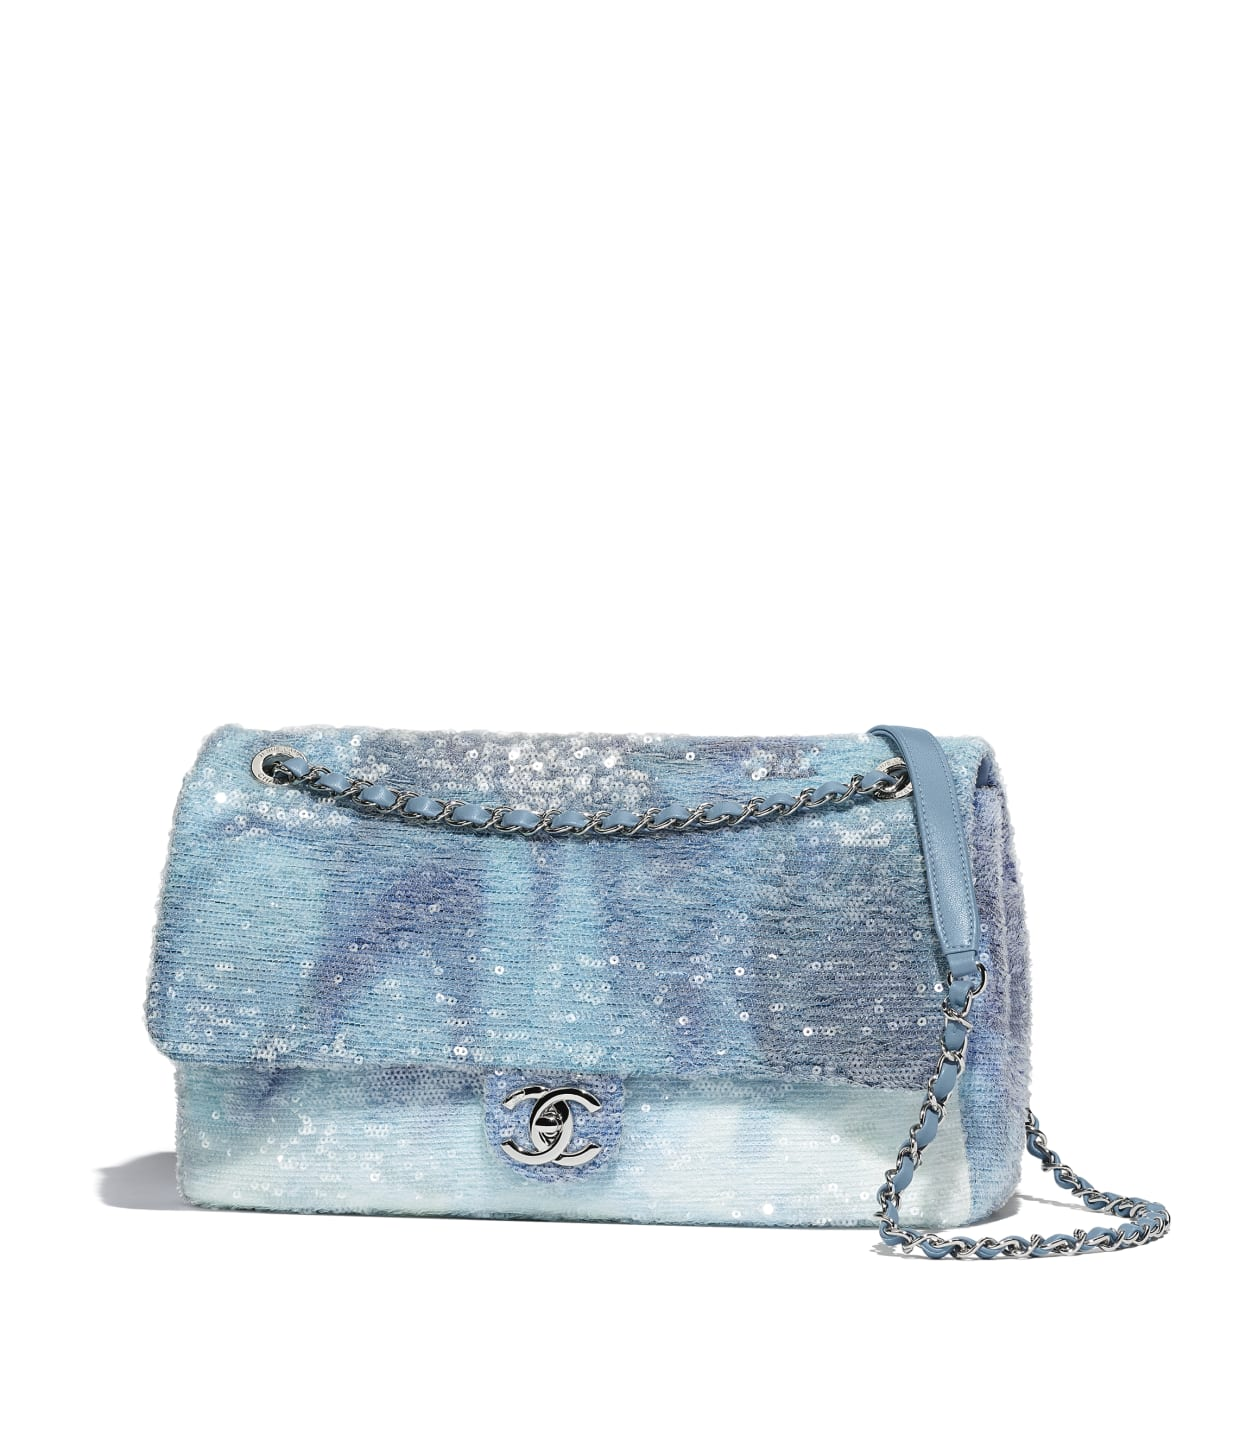 Sequins Silver Tone Metal Light Blue Turquoise Flap Bag Chanel